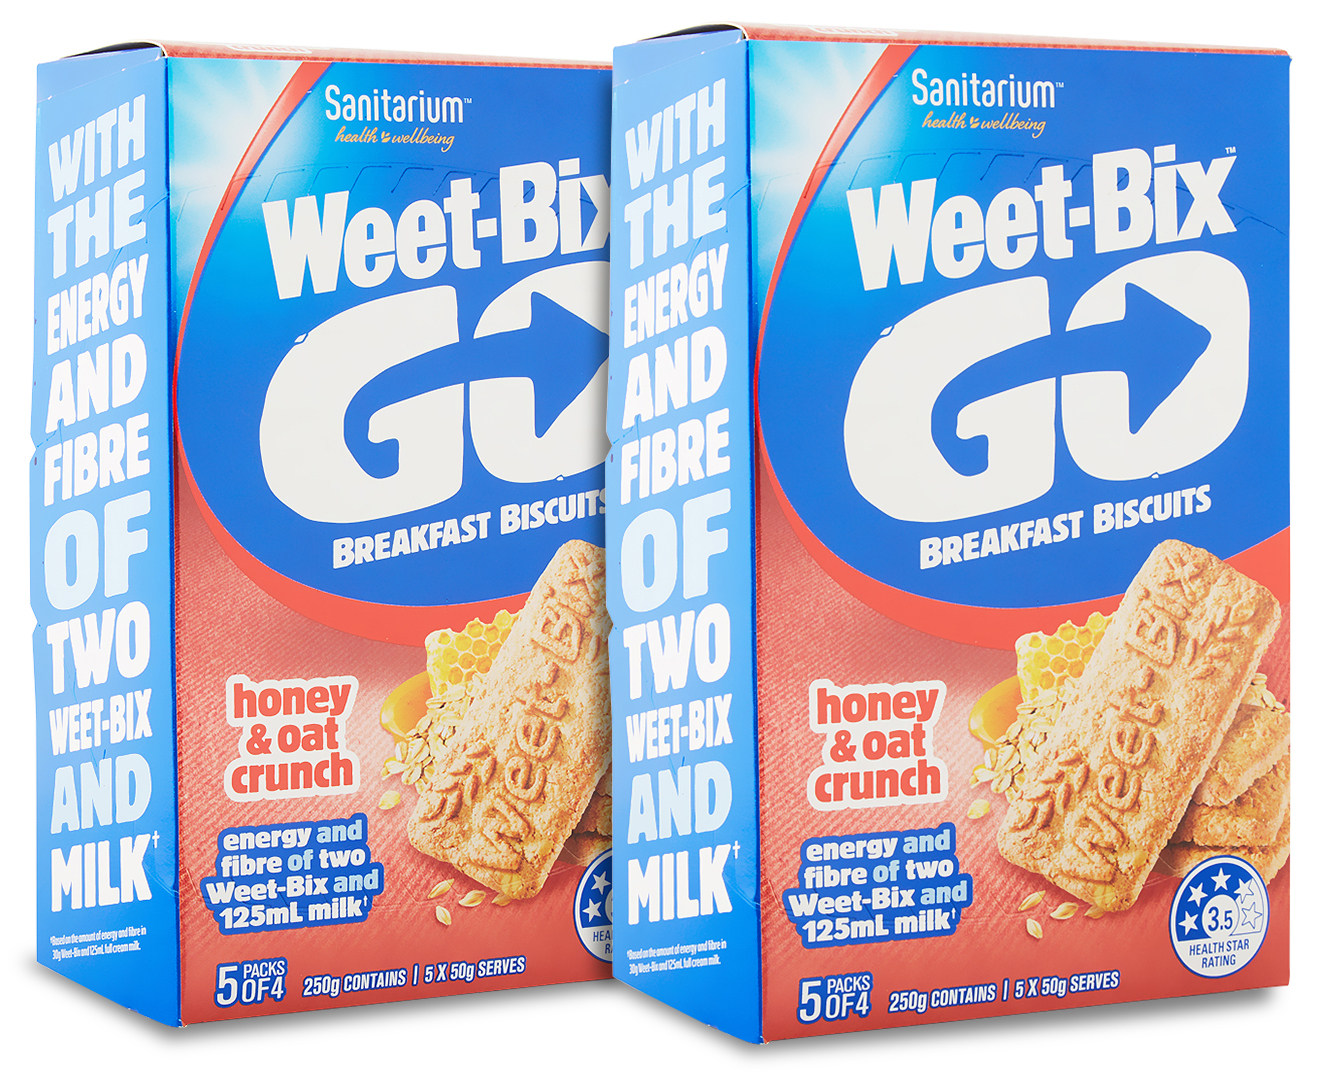 2 x Sanitarium Weet-Bix Go Breakfast Biscuits Honey & Oat Crunch 250g | Catch.com.au